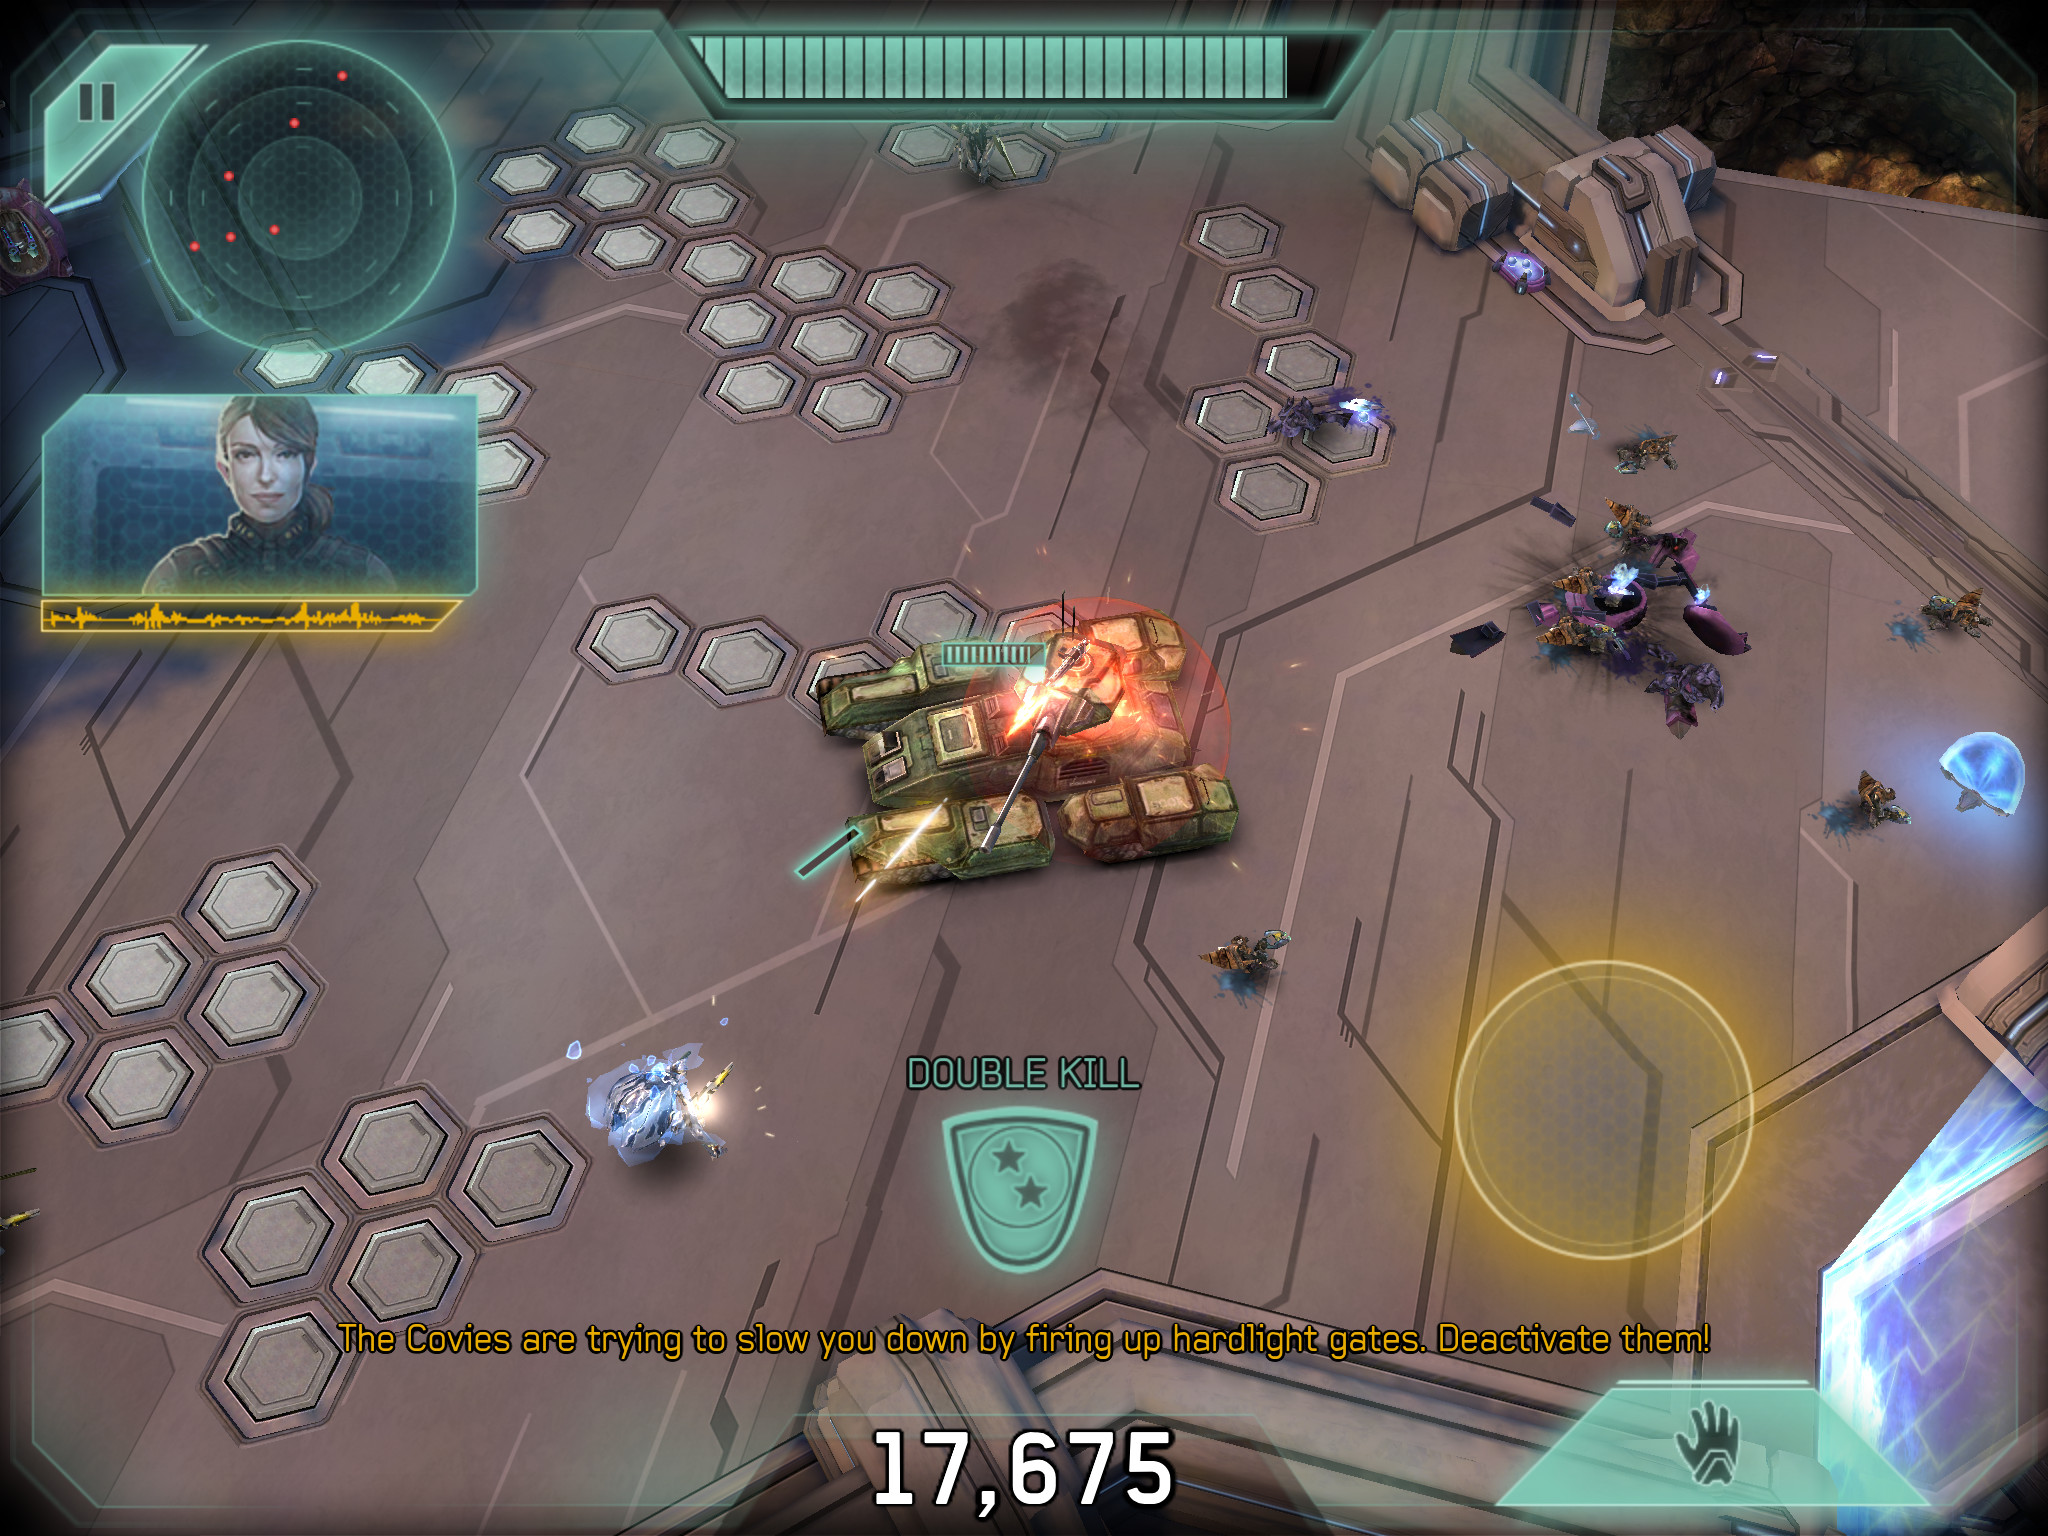 Halo: Spartan Strike review